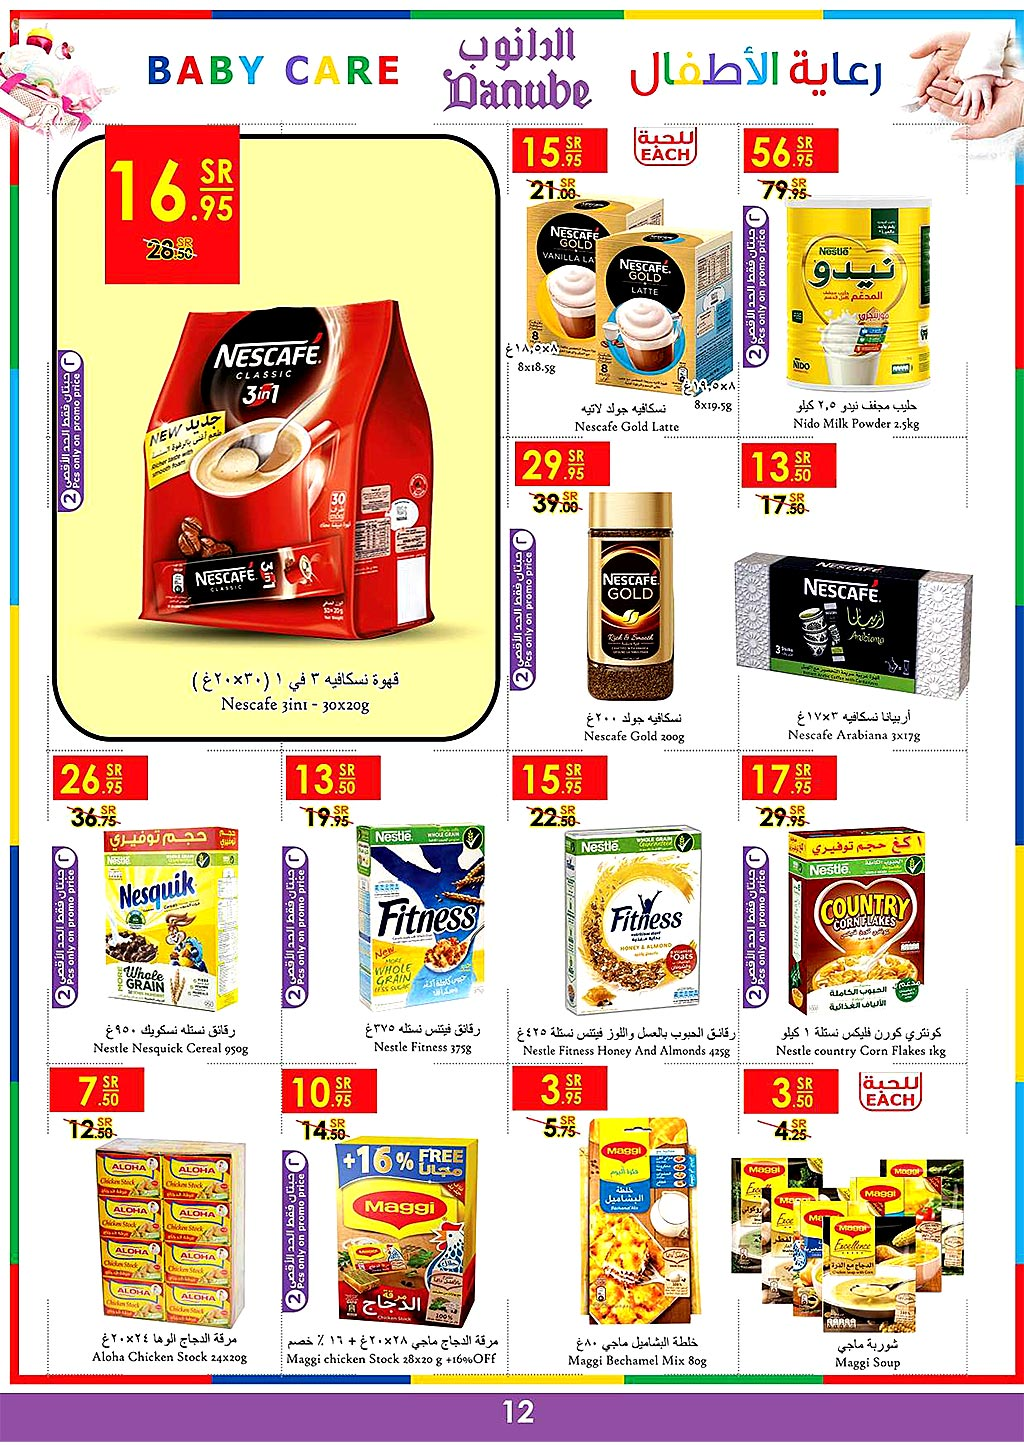 danube offers from 24july to 30july 2019 page number 11 عروض الدانوب من 24 يوليو حتى 30 يوليو 2019 صفحة رقم 11